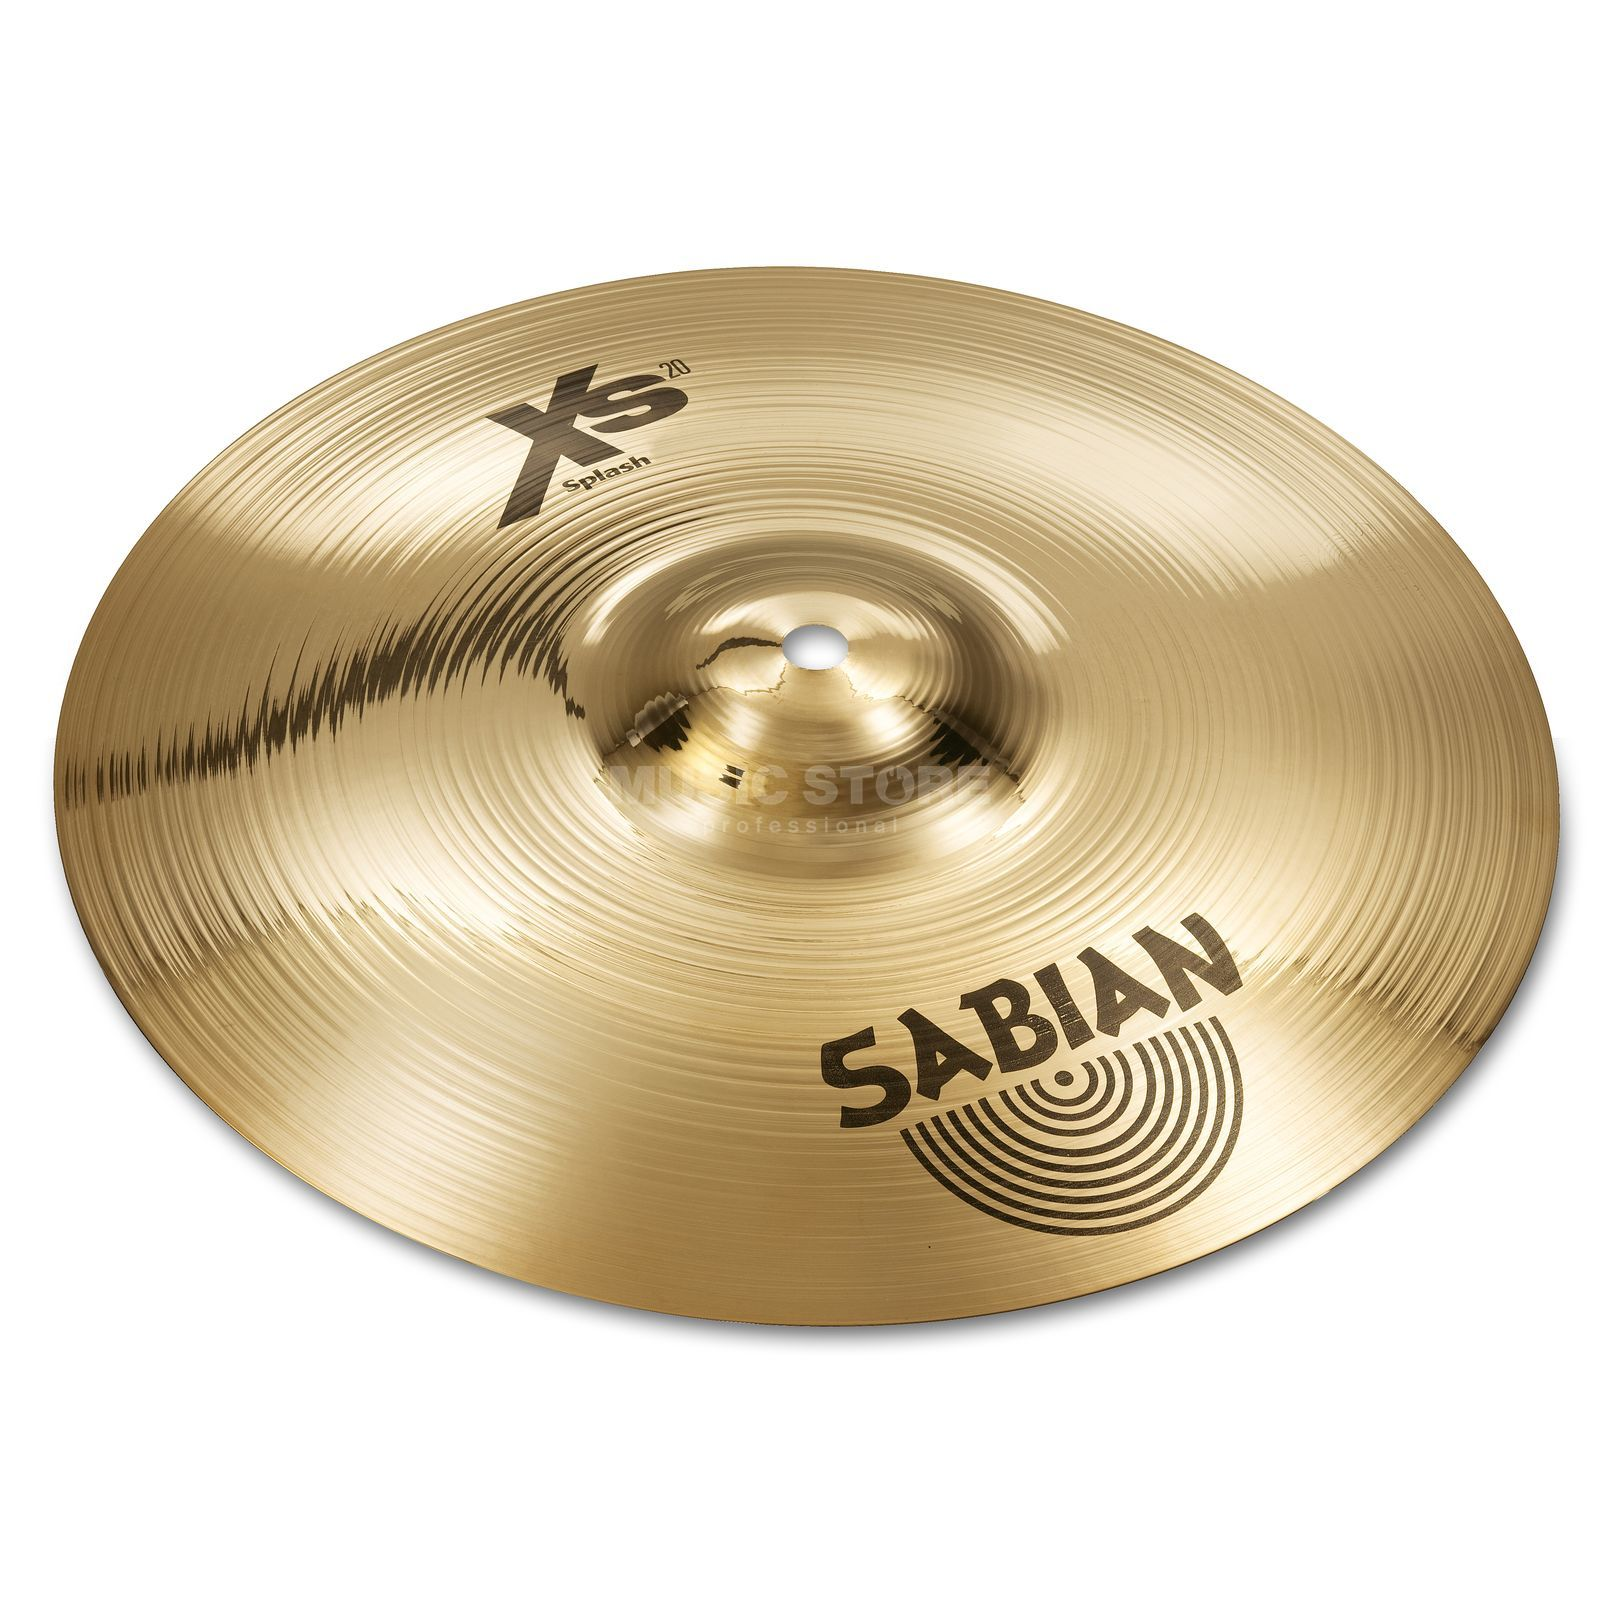 "Sabian XS20 Splash 10"", Brilliant Finish Productafbeelding"